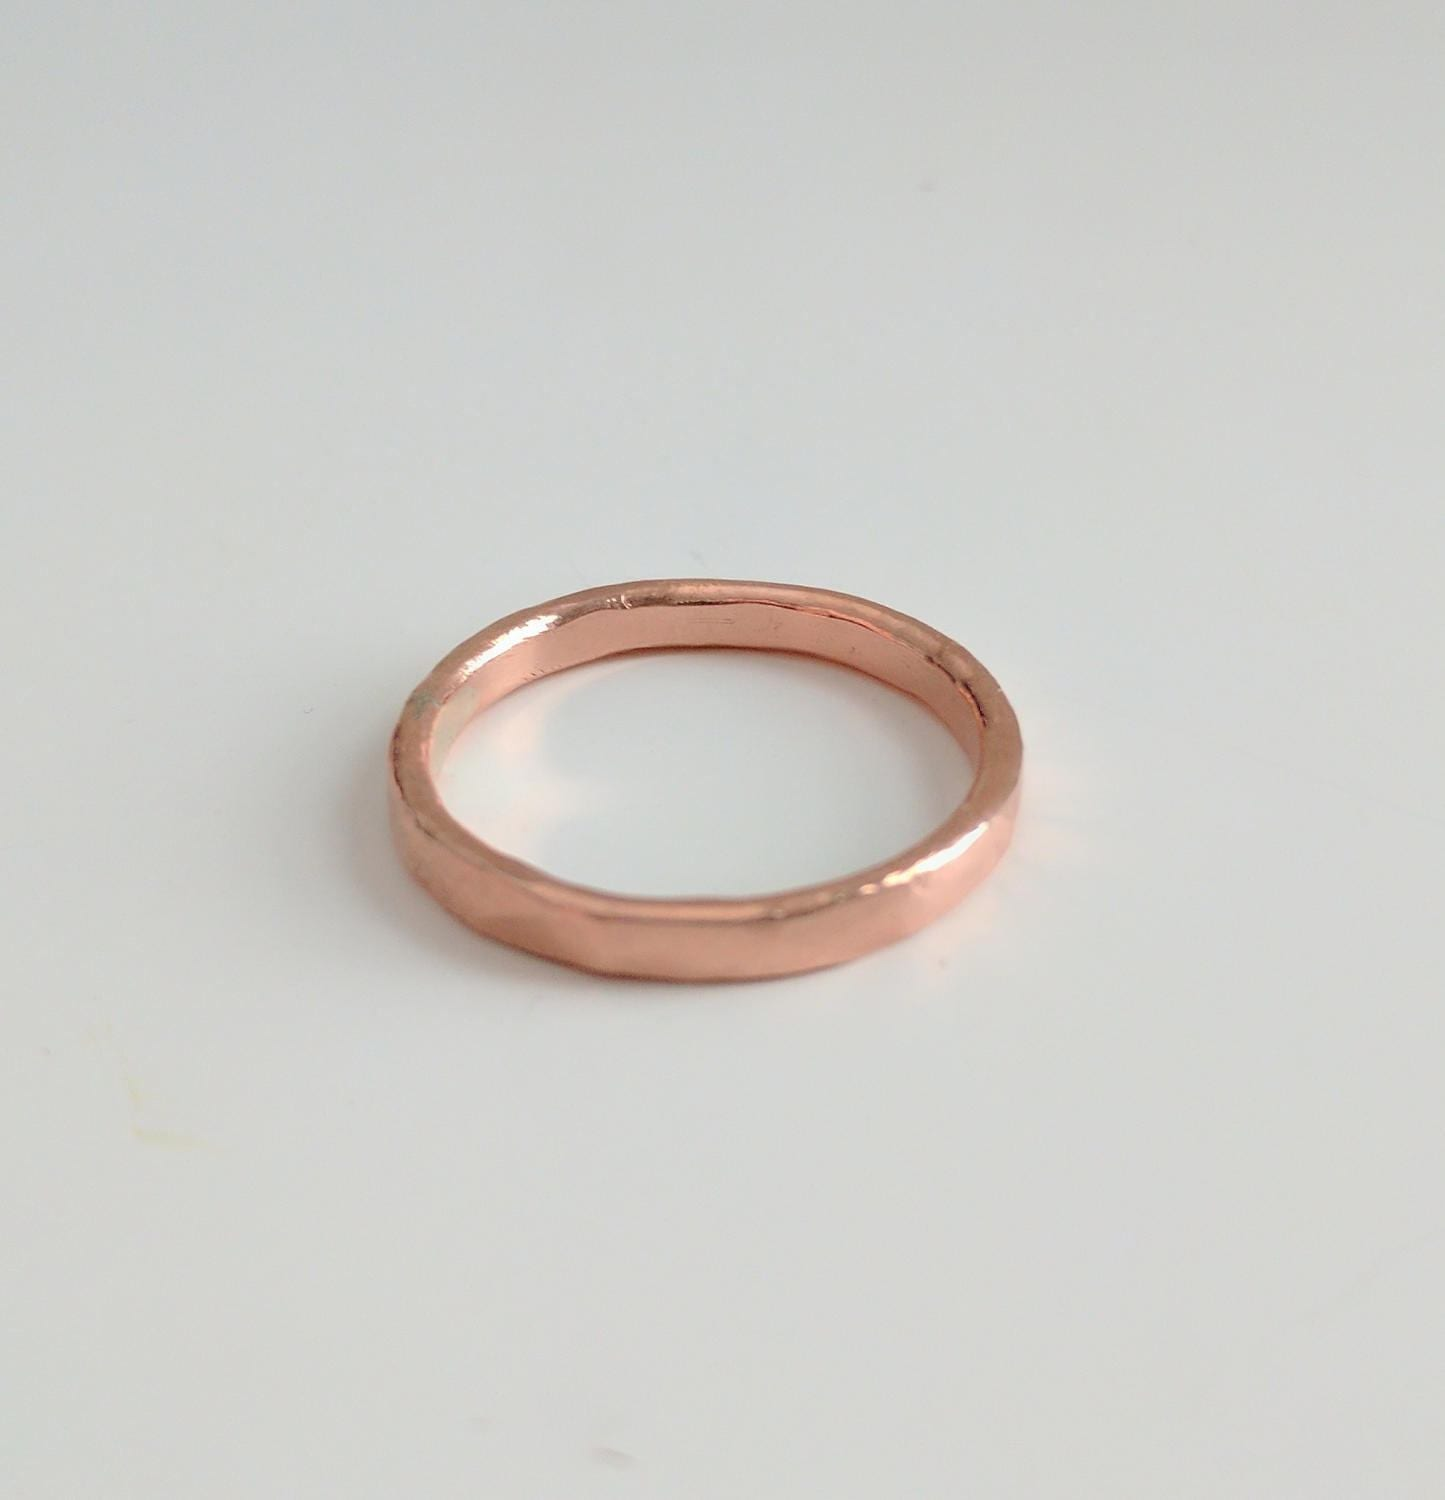 Hammered Finish Bands: Hammered Finish Copper Band Ring Copper Wedding Band Style